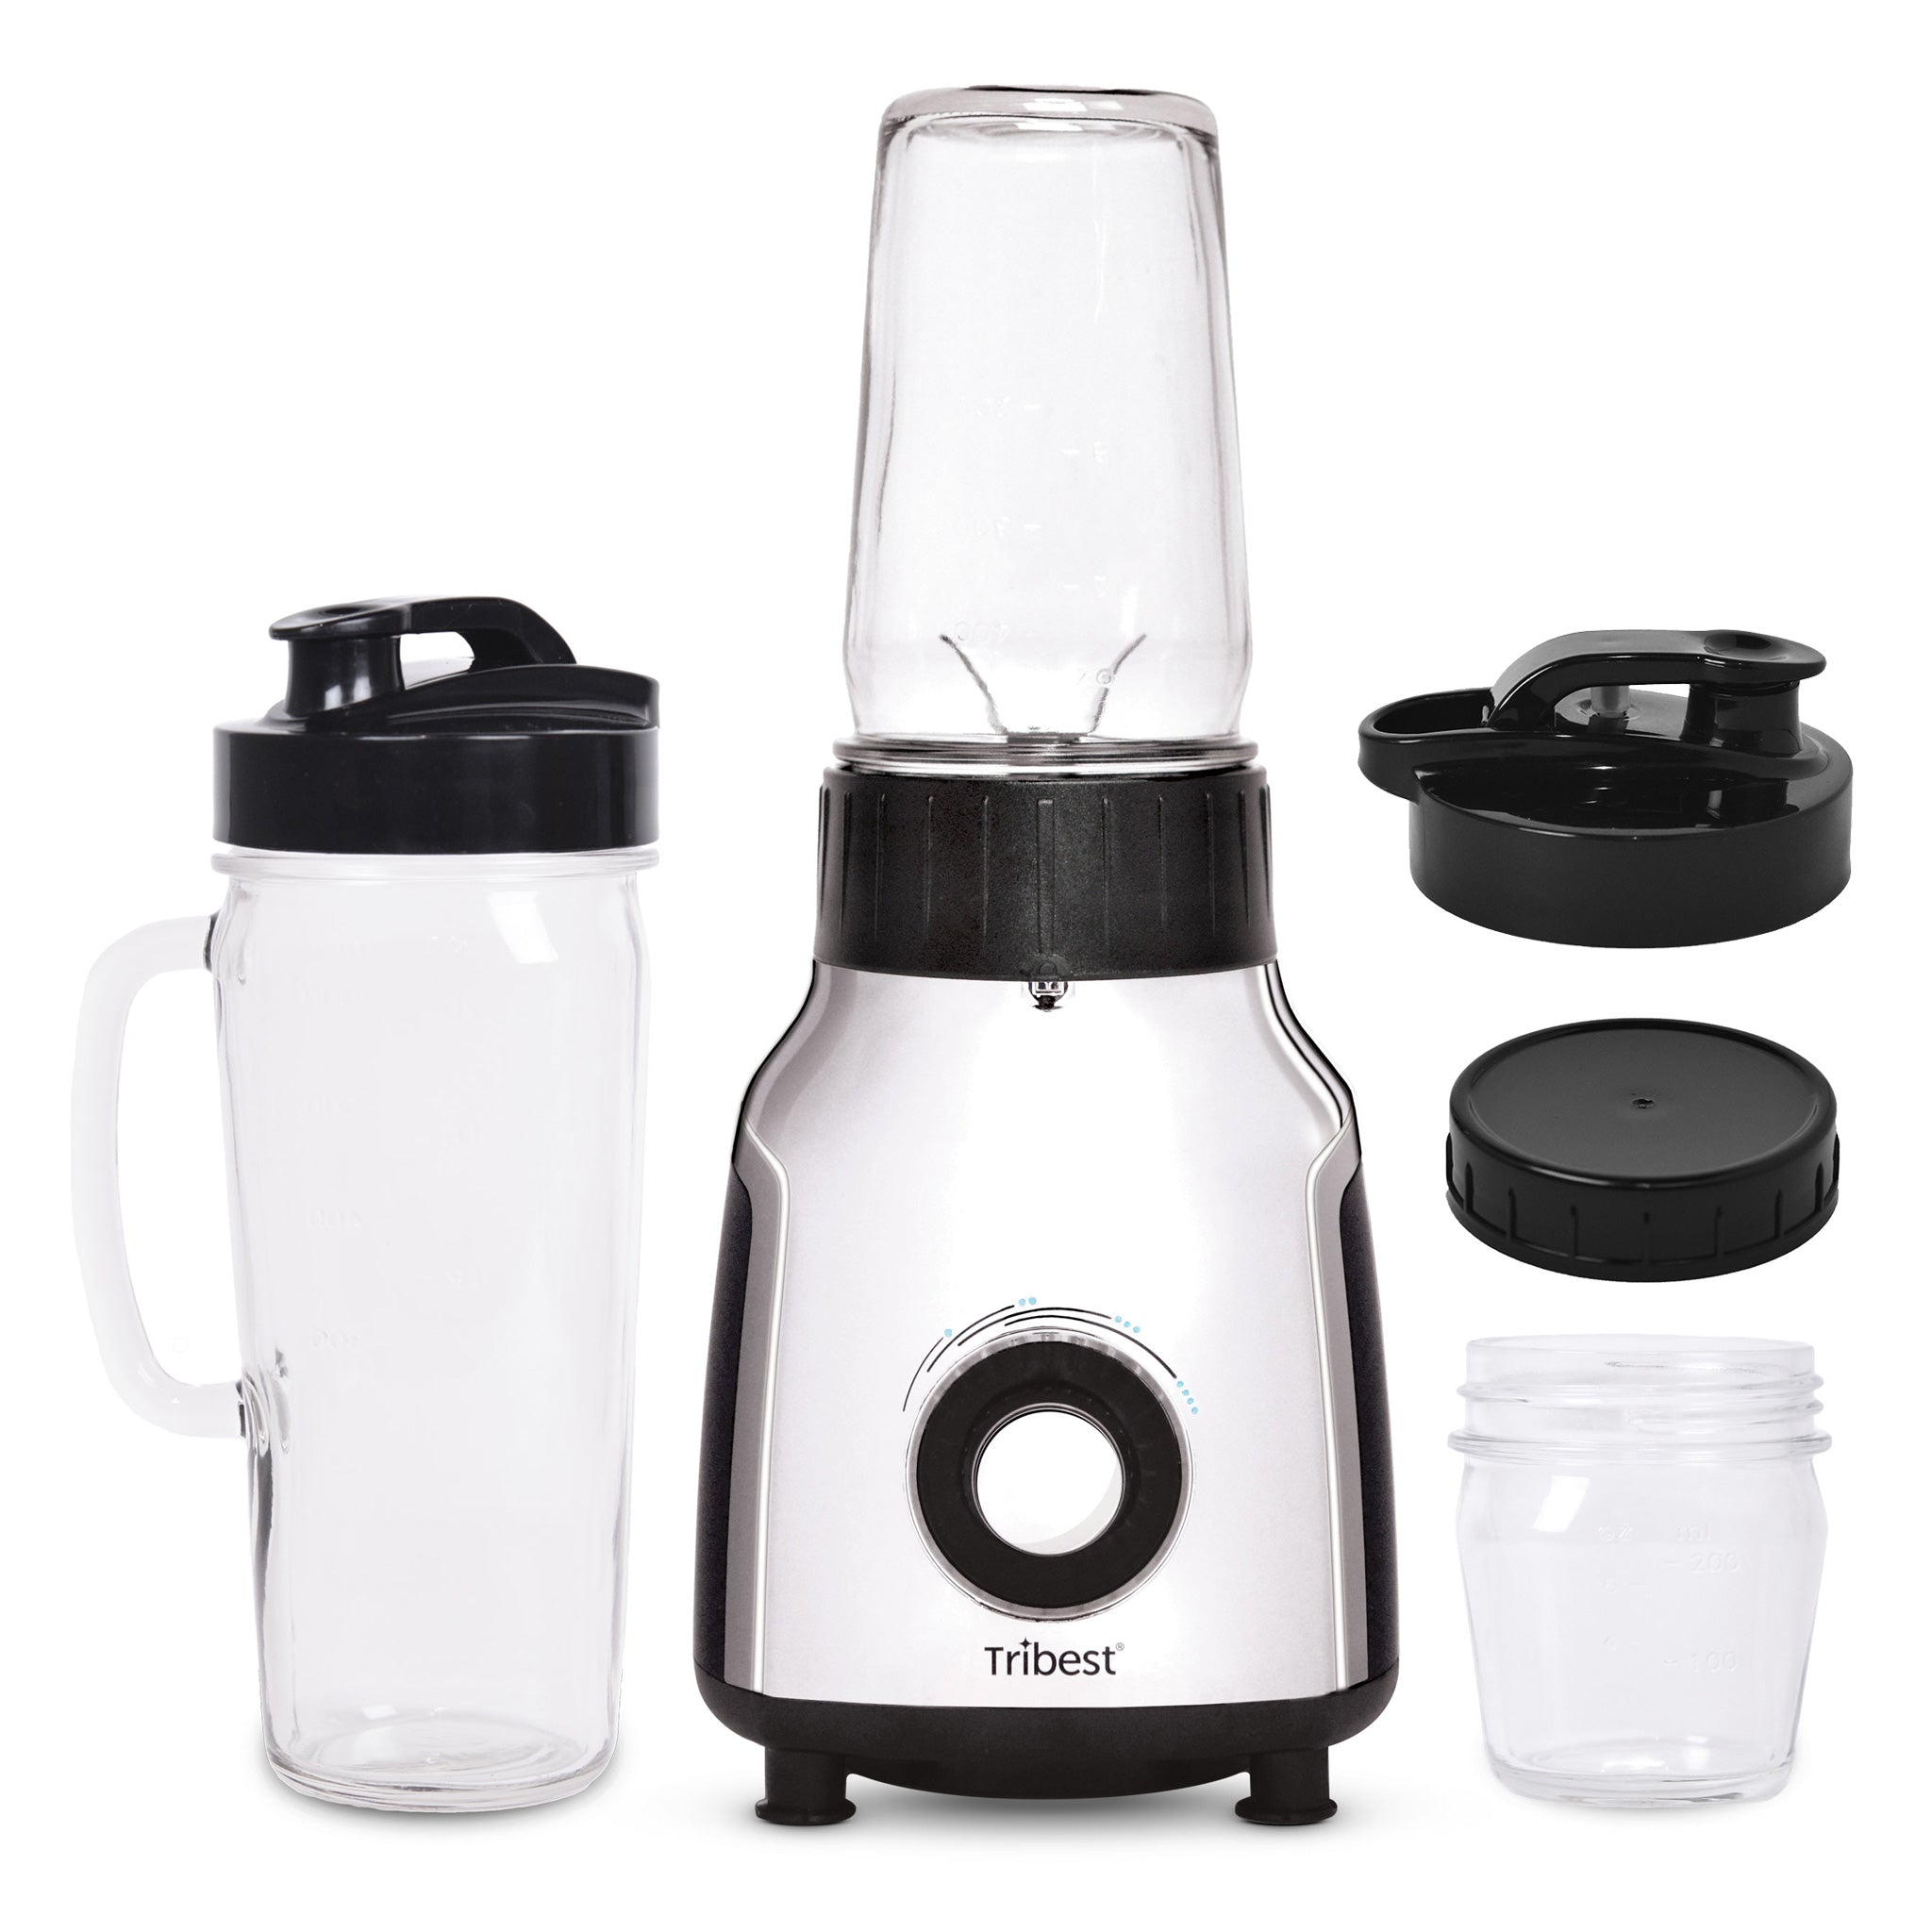 Glass Personal Blender Single-Serving Blender PBG-5050-A - Tribest